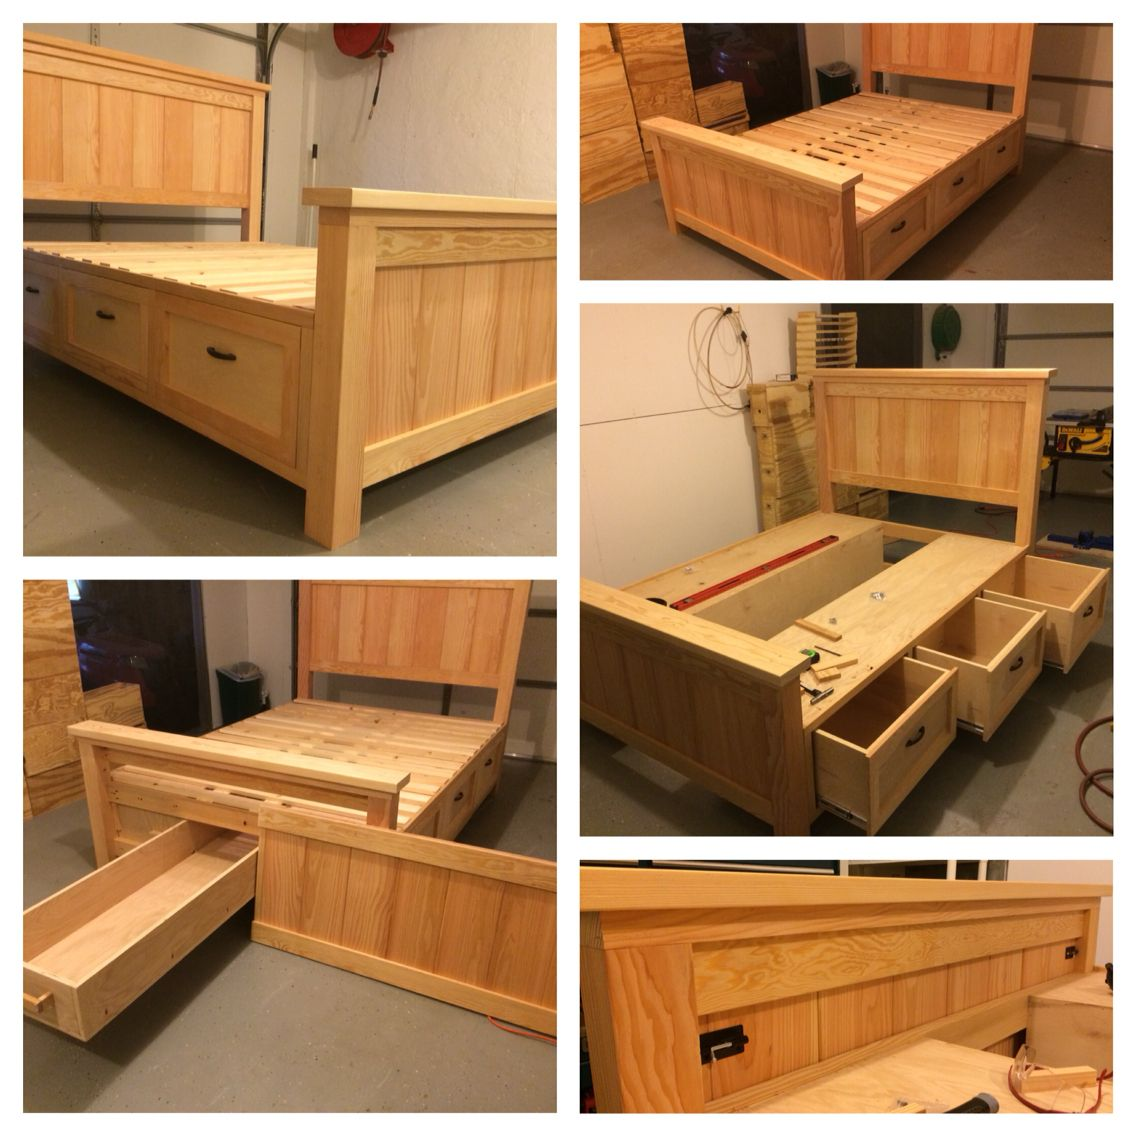 I Just Finished This Build It Is A Queen Farmhouse Storage Bed